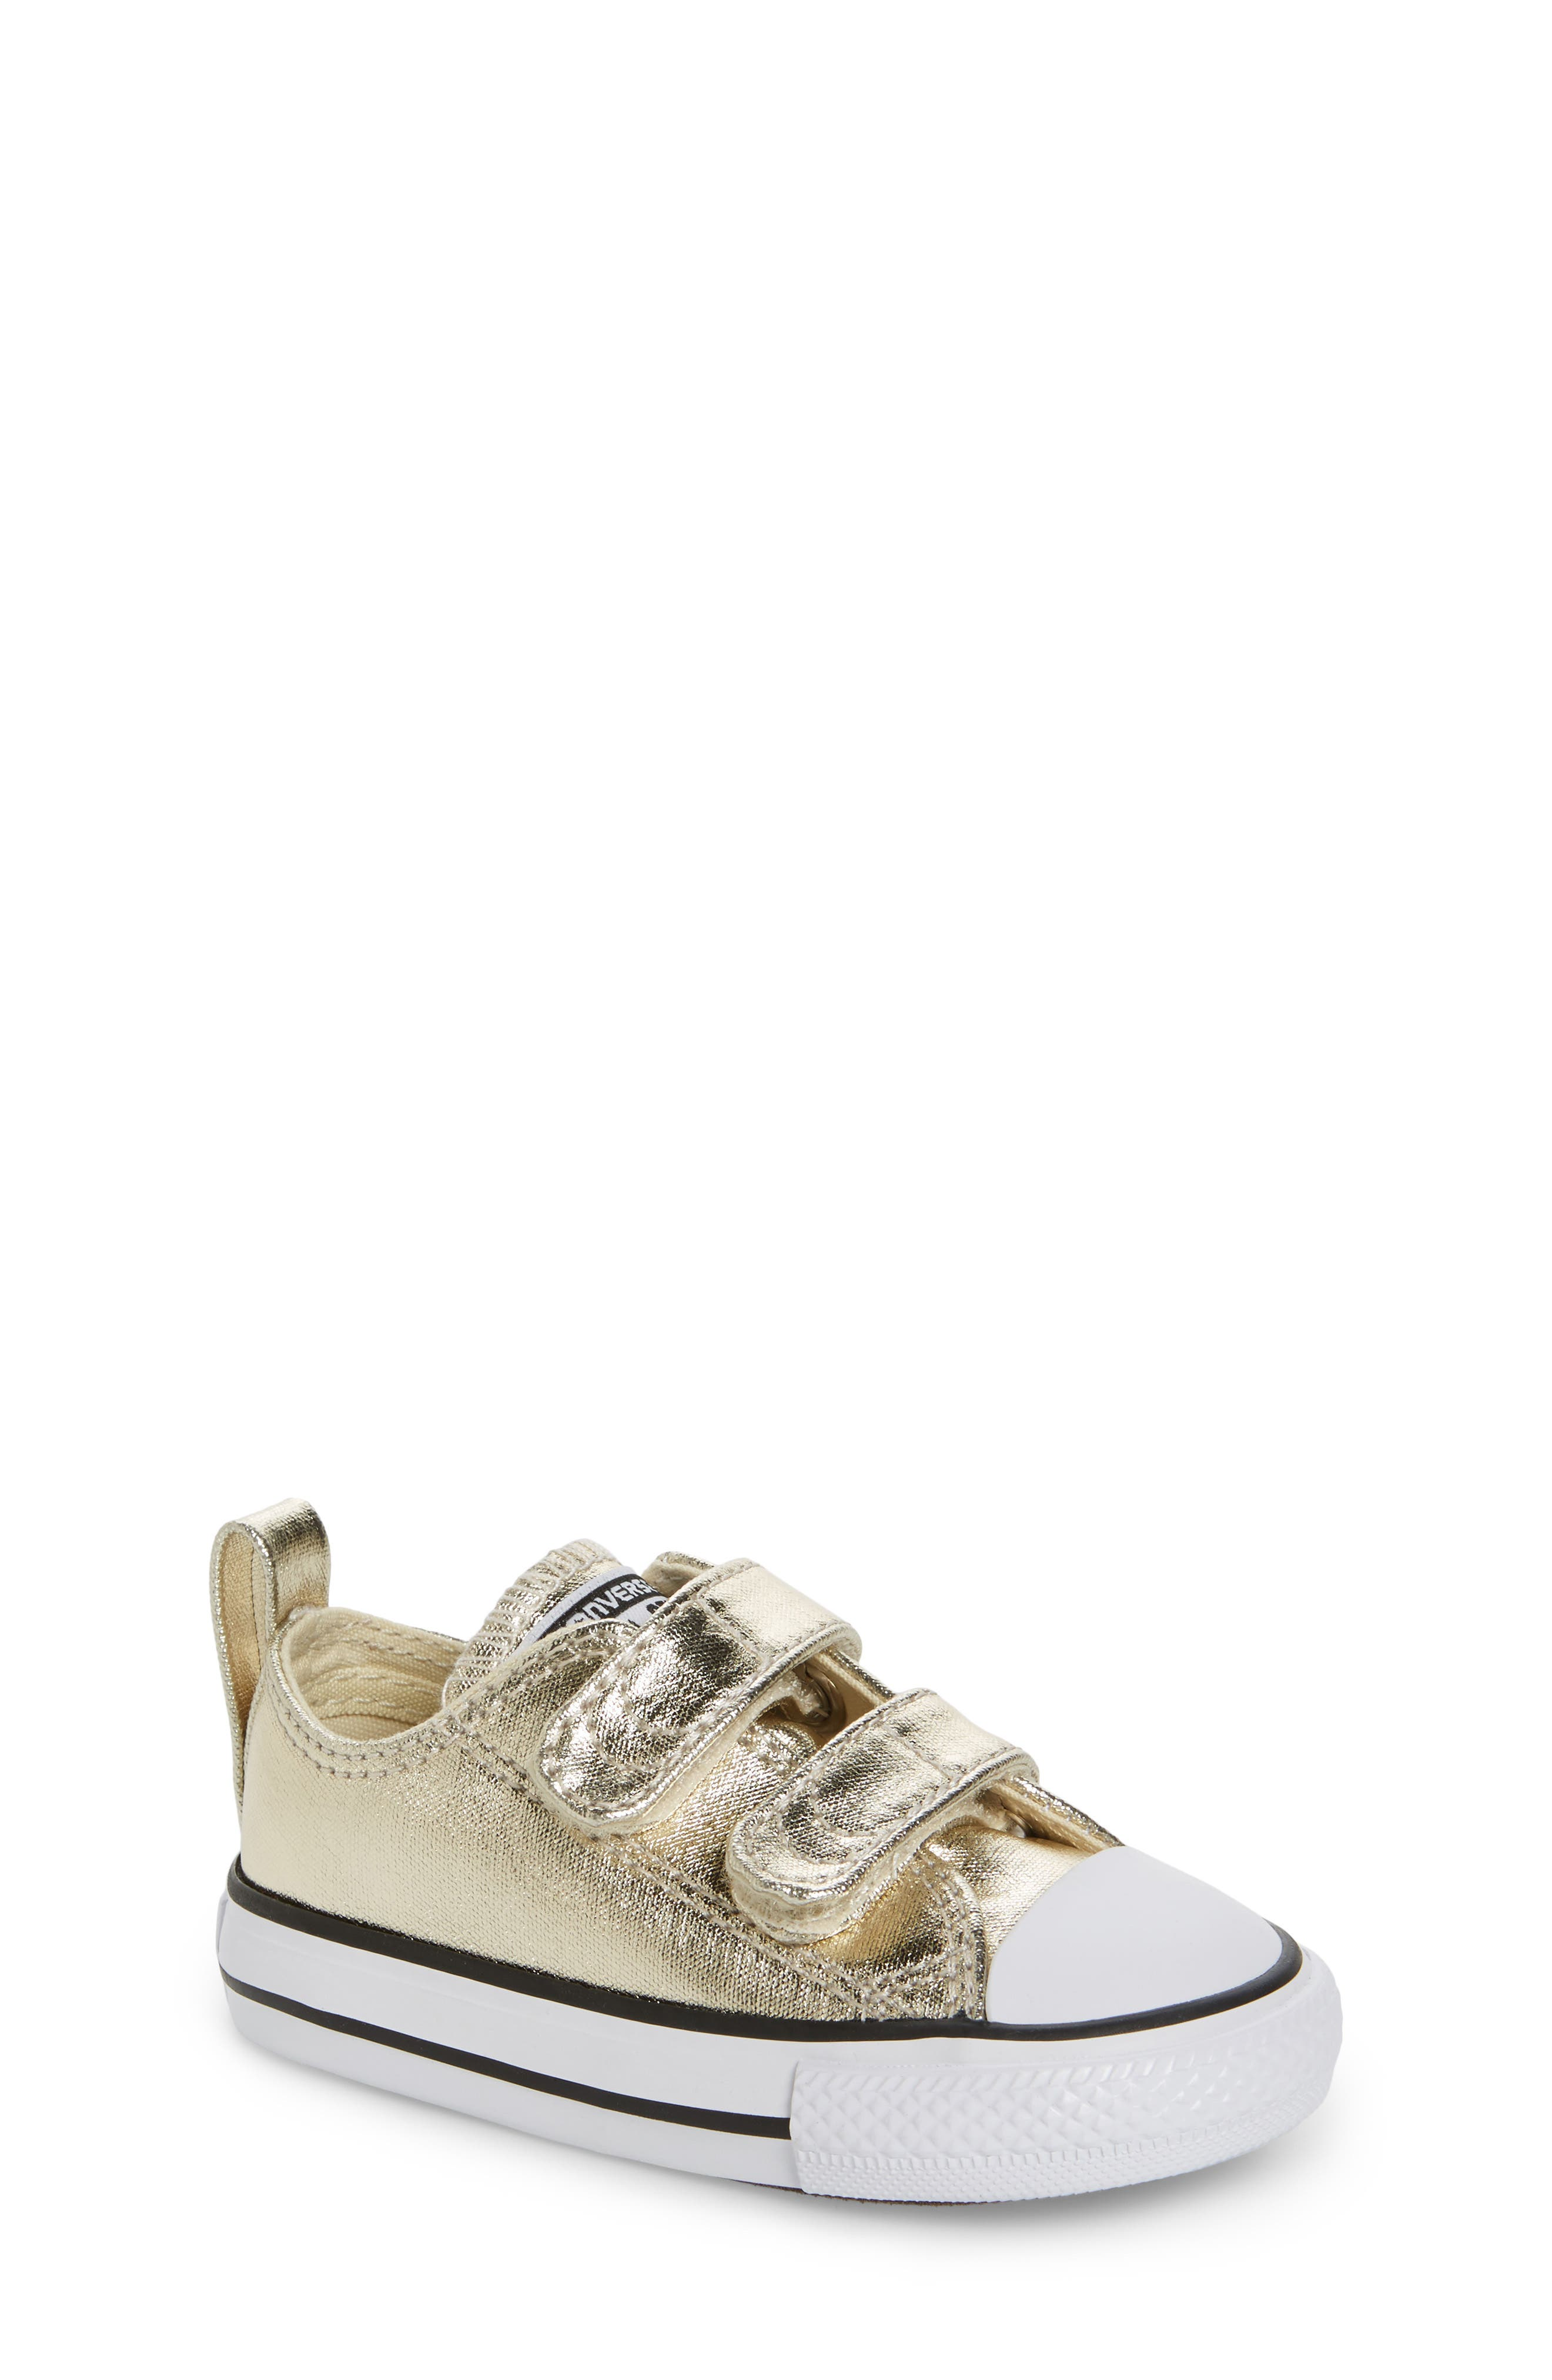 Alternate Image 1 Selected - Converse Chuck Taylor® All Star® 2V Metallic Low-Top Sneaker (Baby, Walker & Toddler)